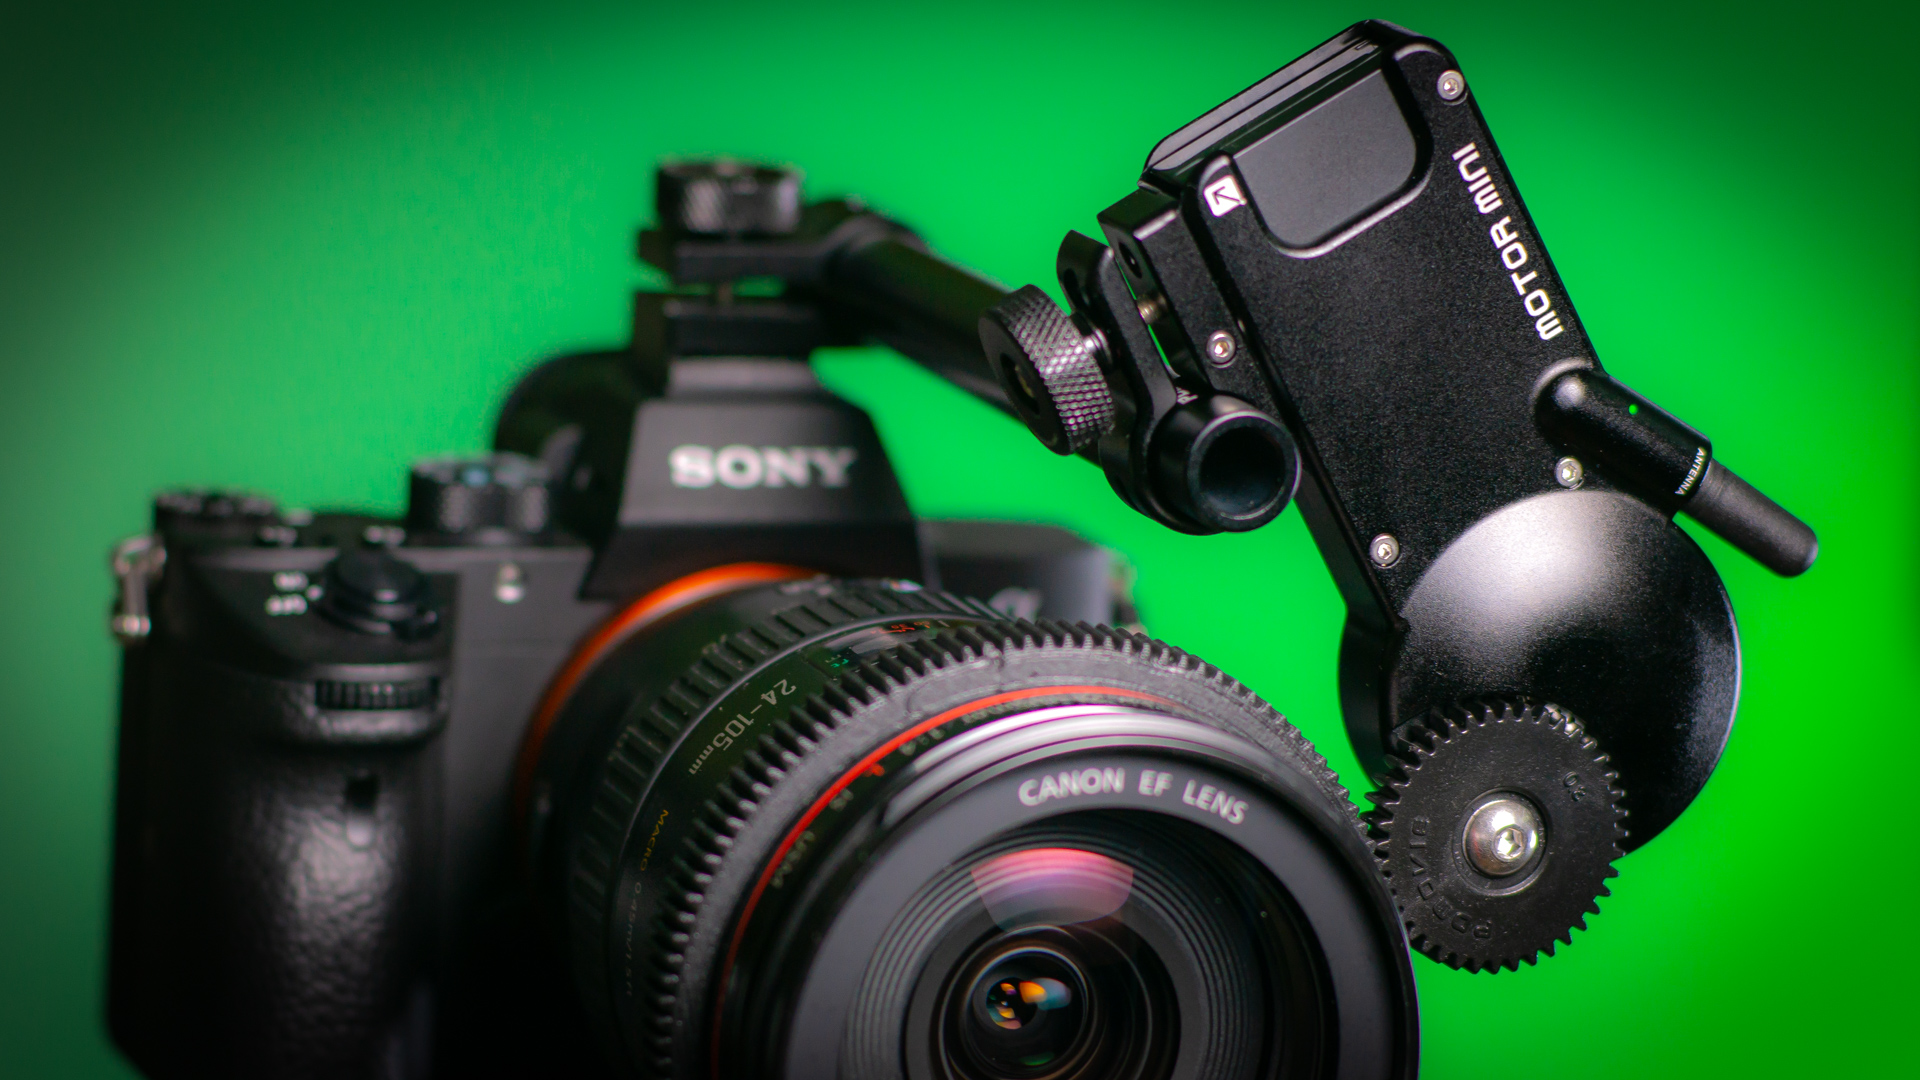 PDMovie Live Air brings Lightweight Wireless Lens Control to Compact Setups